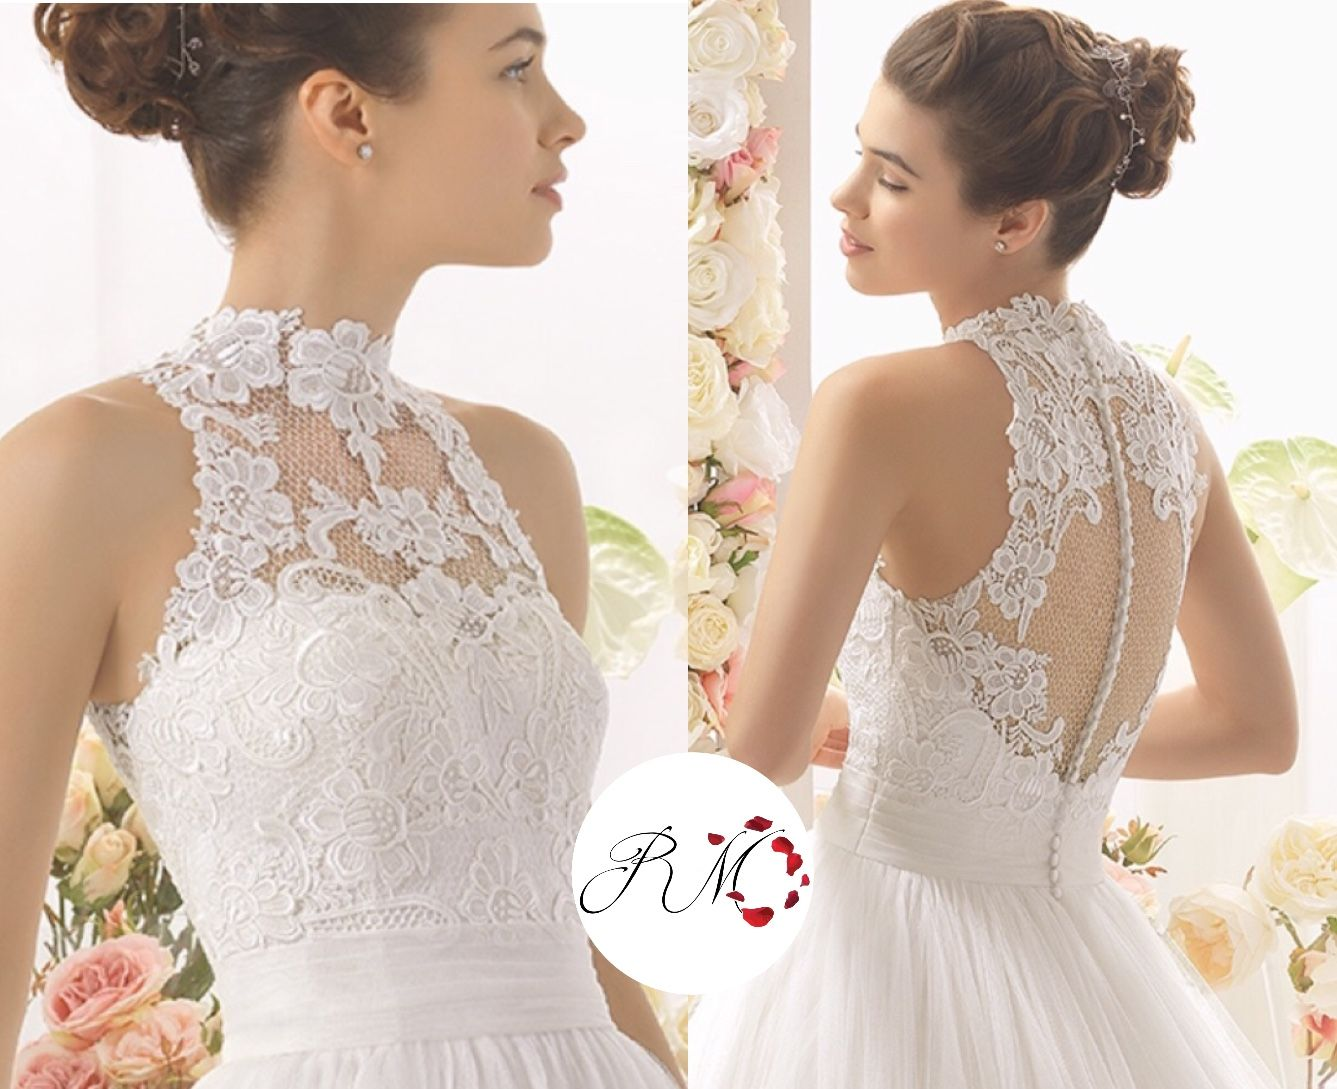 Halter Neck Accessory Lace Appliqued Onto Tulle High Neck Style The Back In The High Collar Wedding Dress High Neck Wedding Dress Halter Wedding Dress Lace